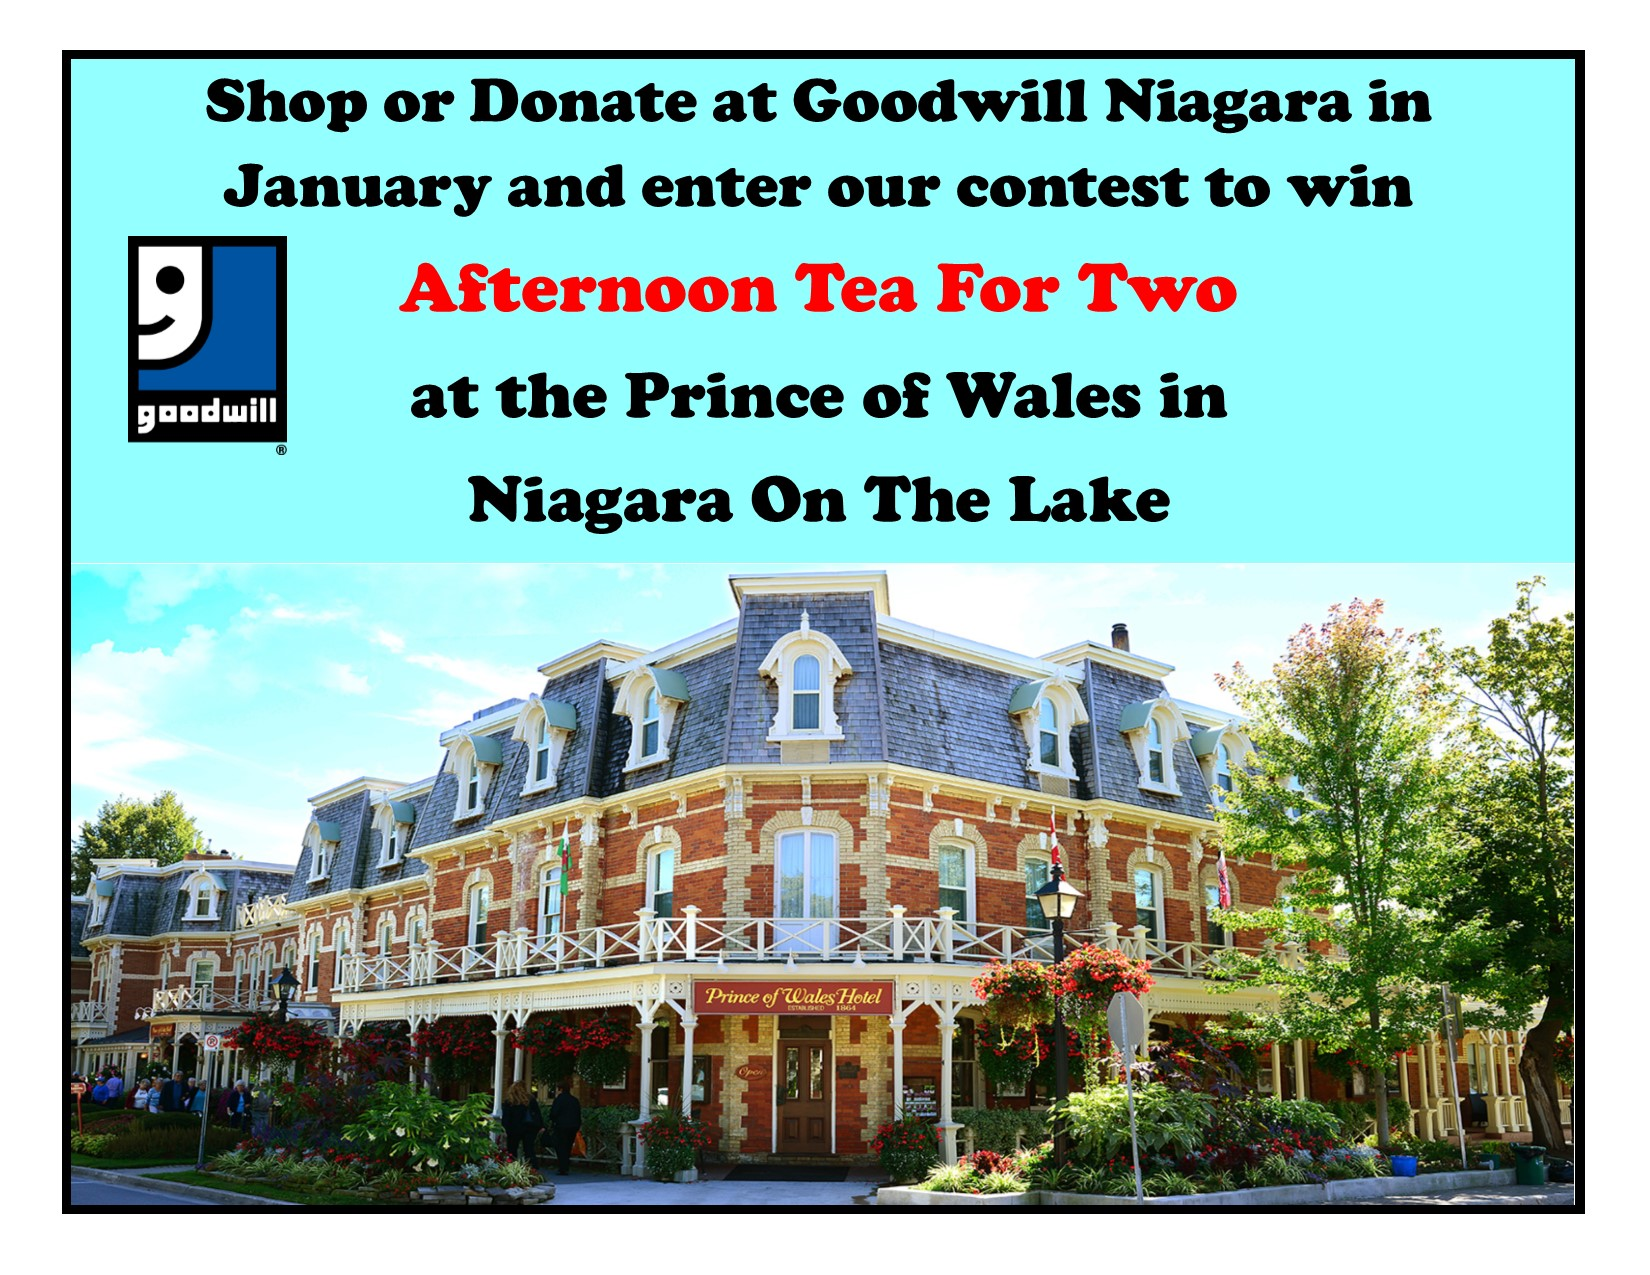 Goodwill Niagara's January Contest